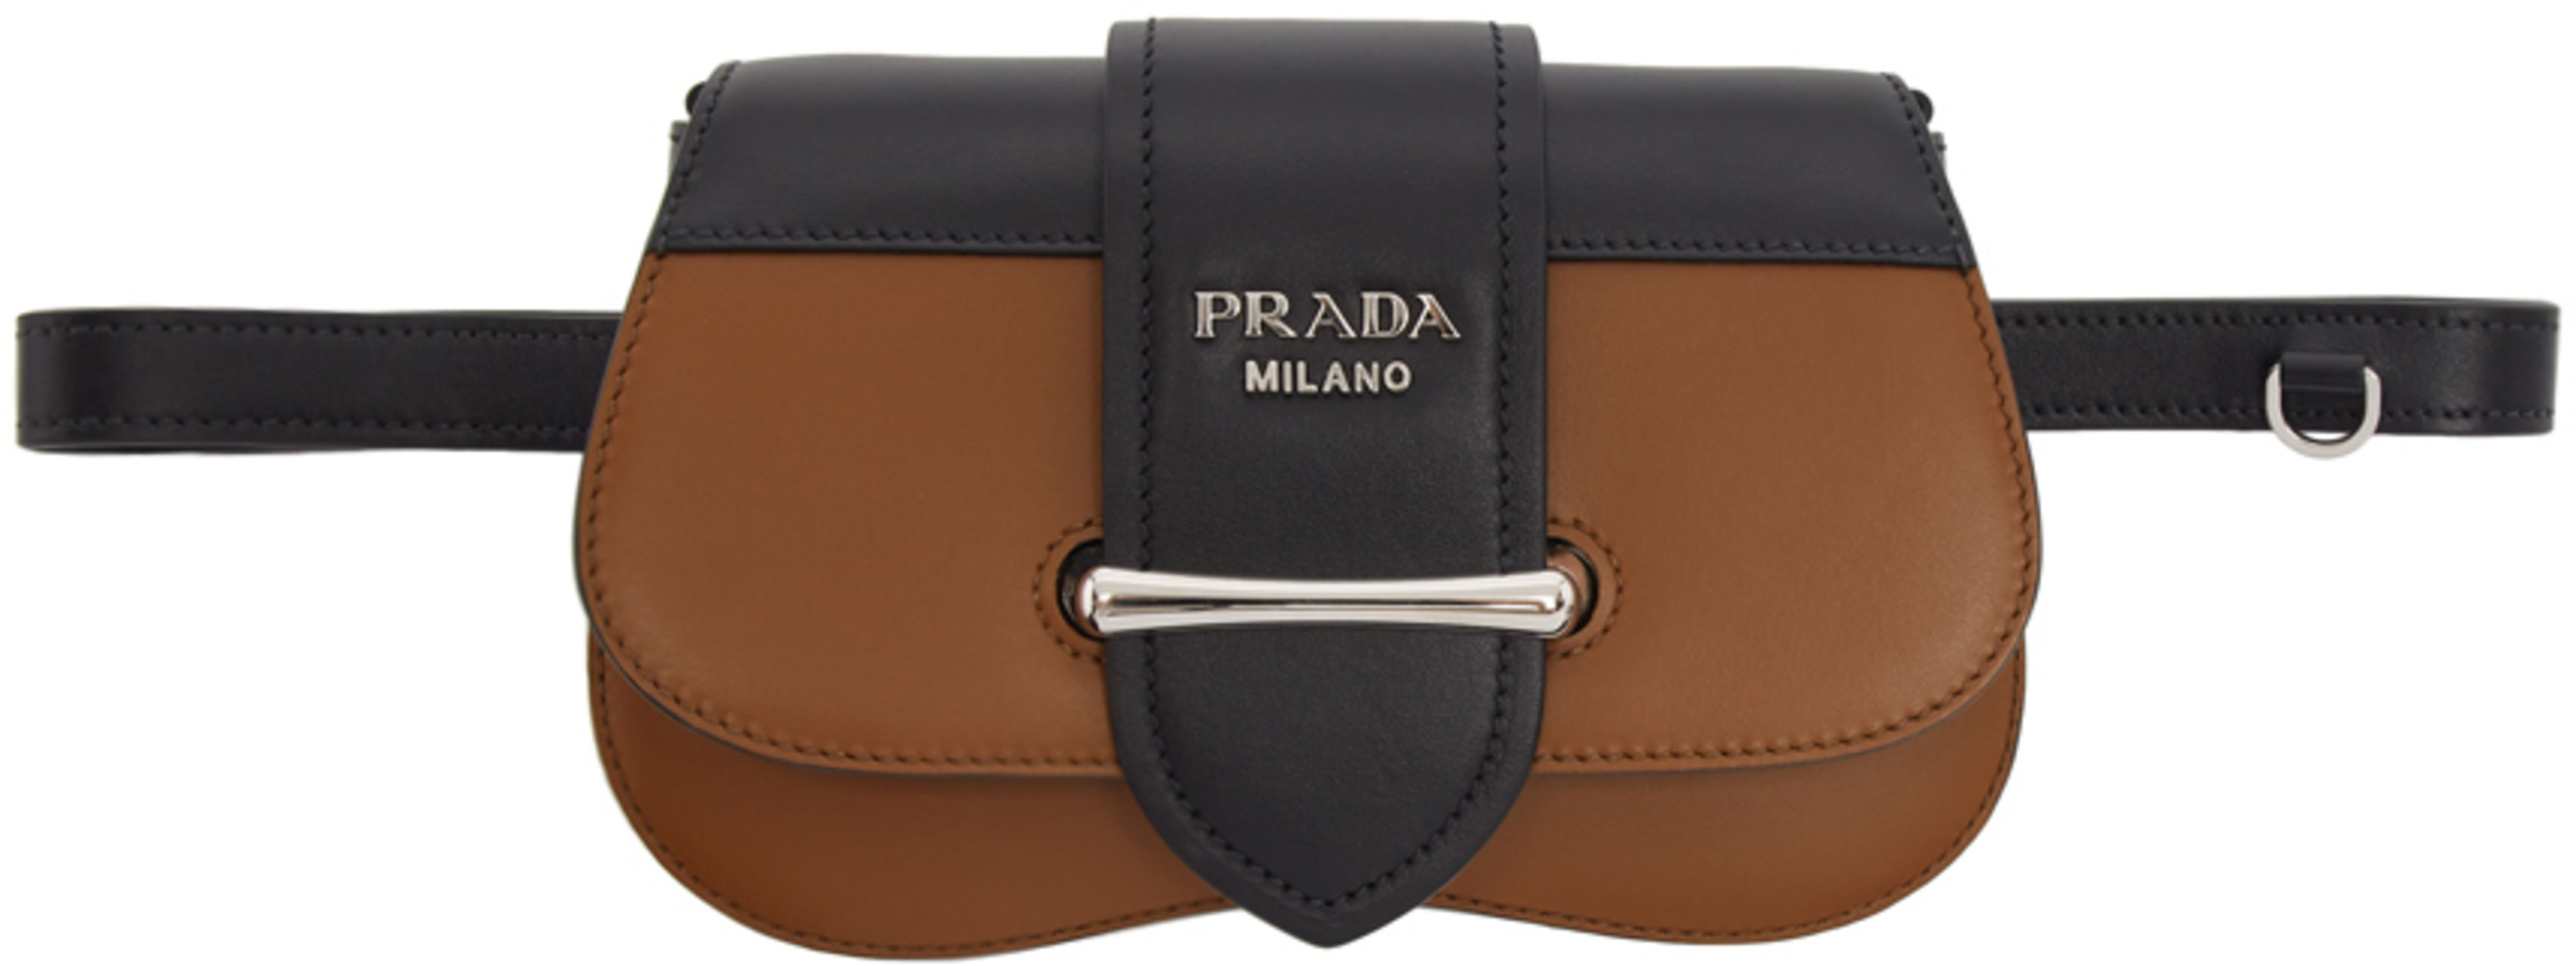 34c5af9e3a Prada bags for Women